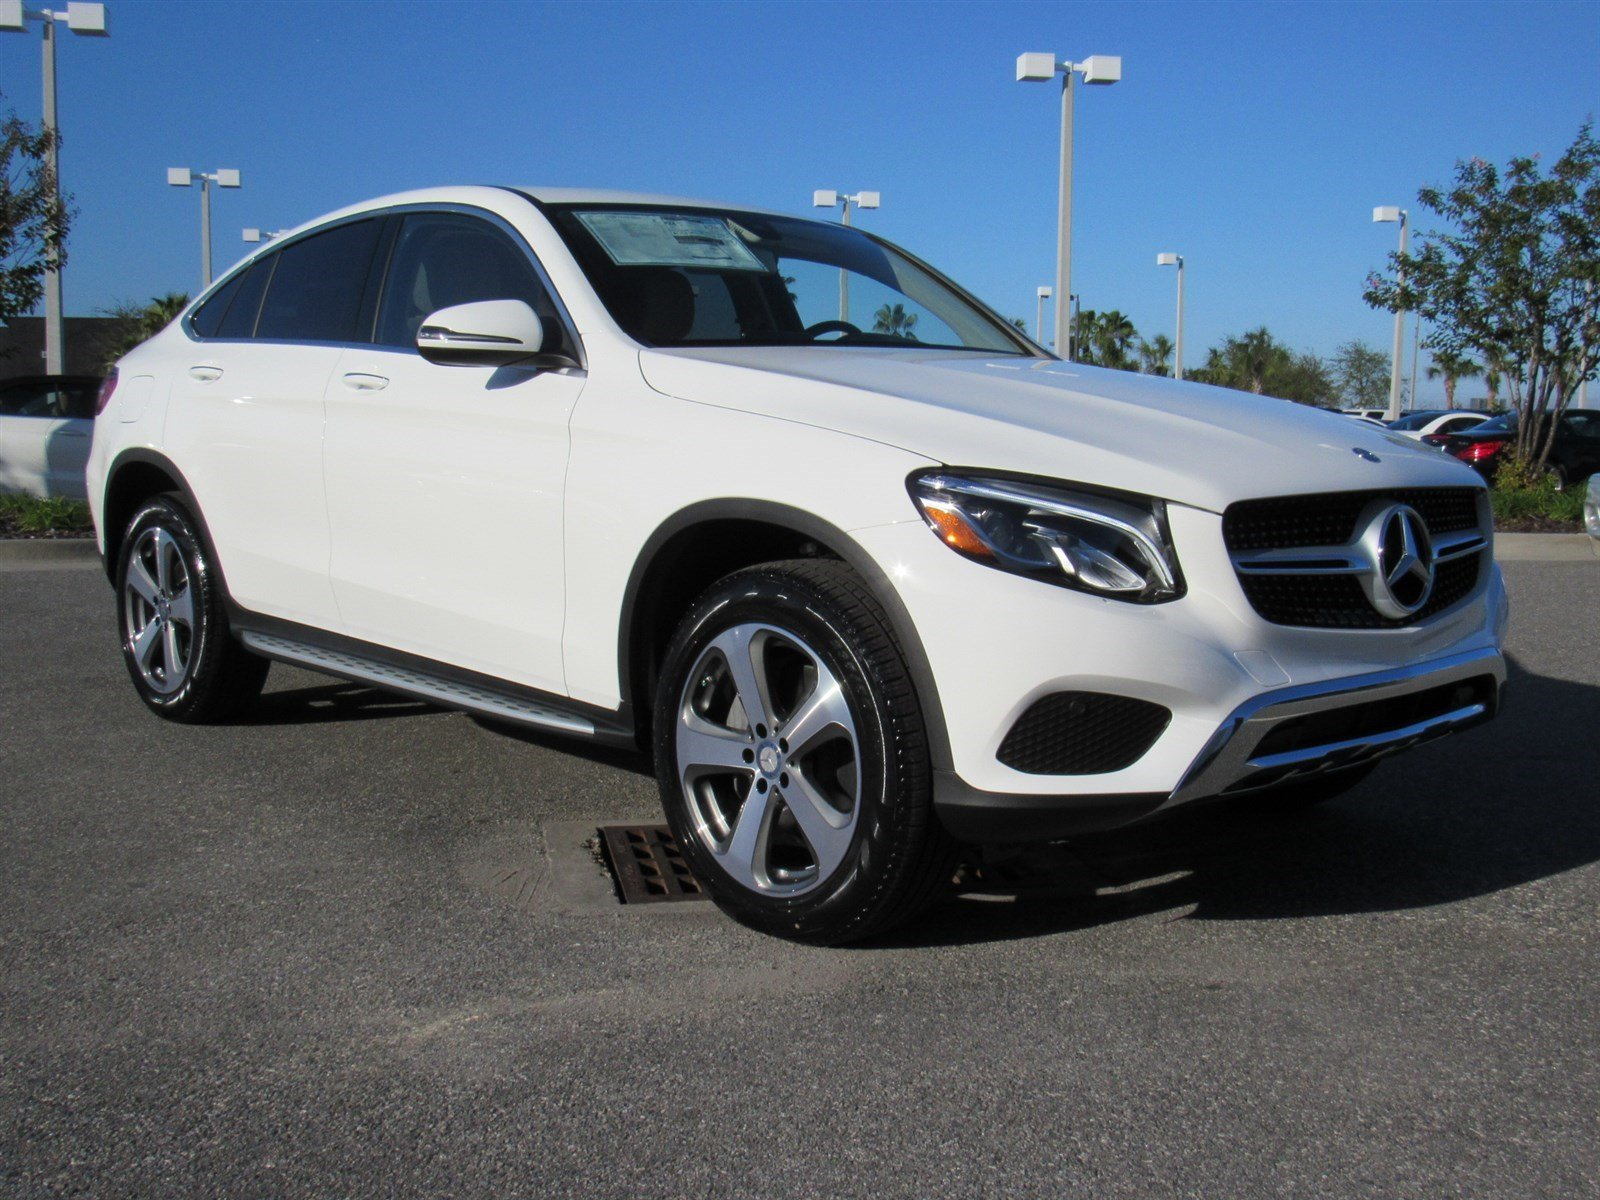 New 2017 mercedes benz glc glc300 coupe in daytona beach for Mercedes benz glc300 coupe